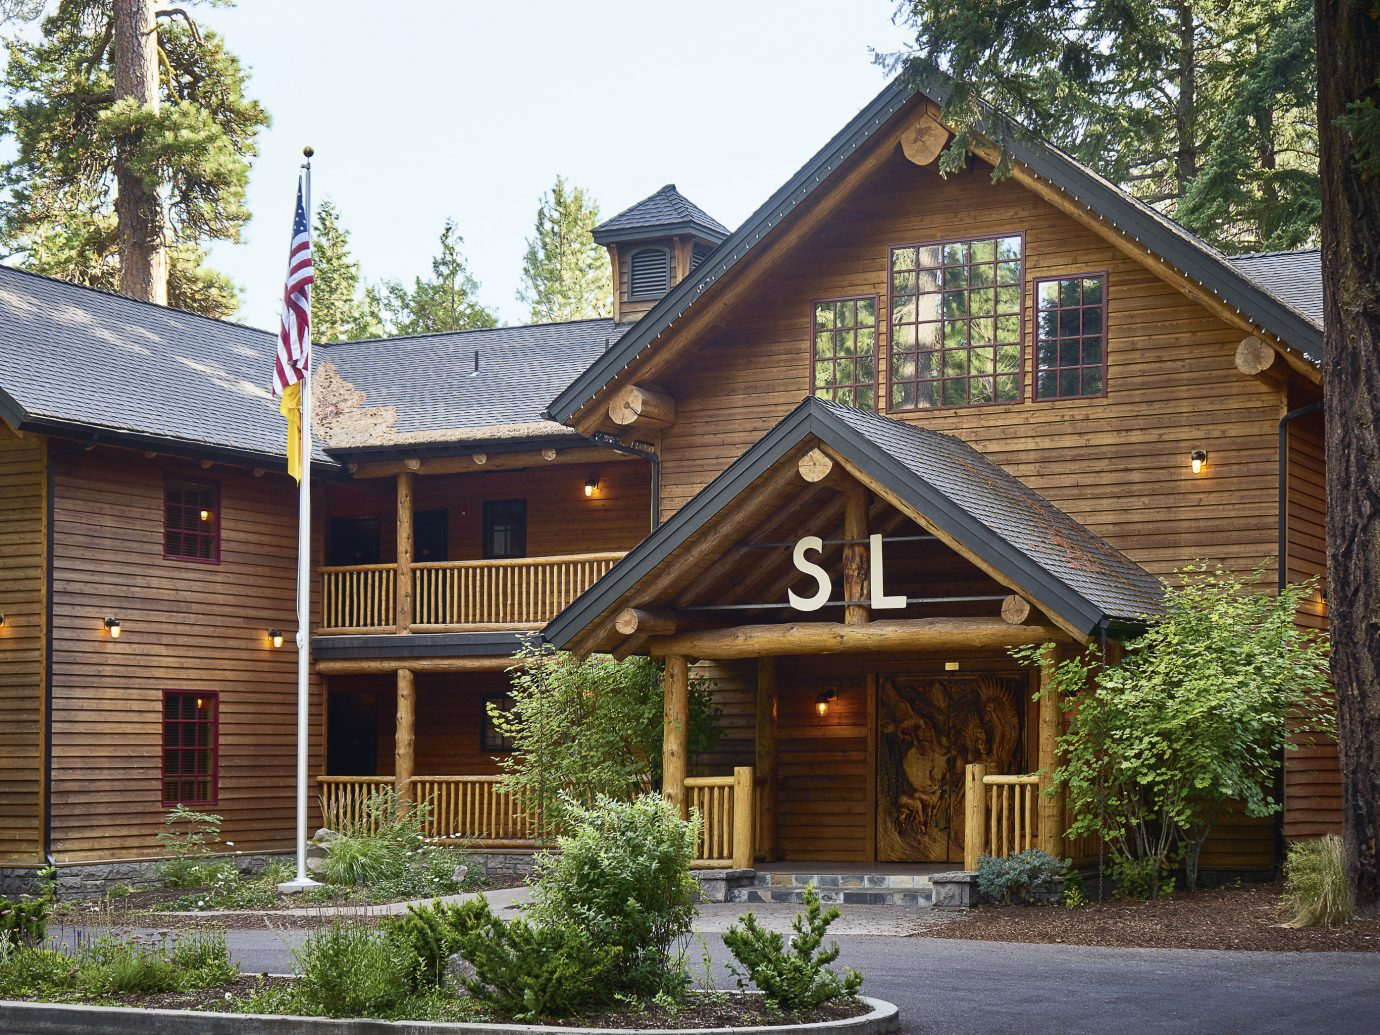 Boutique Hotels Fall Travel Hotels Outdoors + Adventure tree outdoor sky building house home property estate log cabin residential area cottage siding real estate residential facade old farmhouse roof Resort Garden Town bushes stone